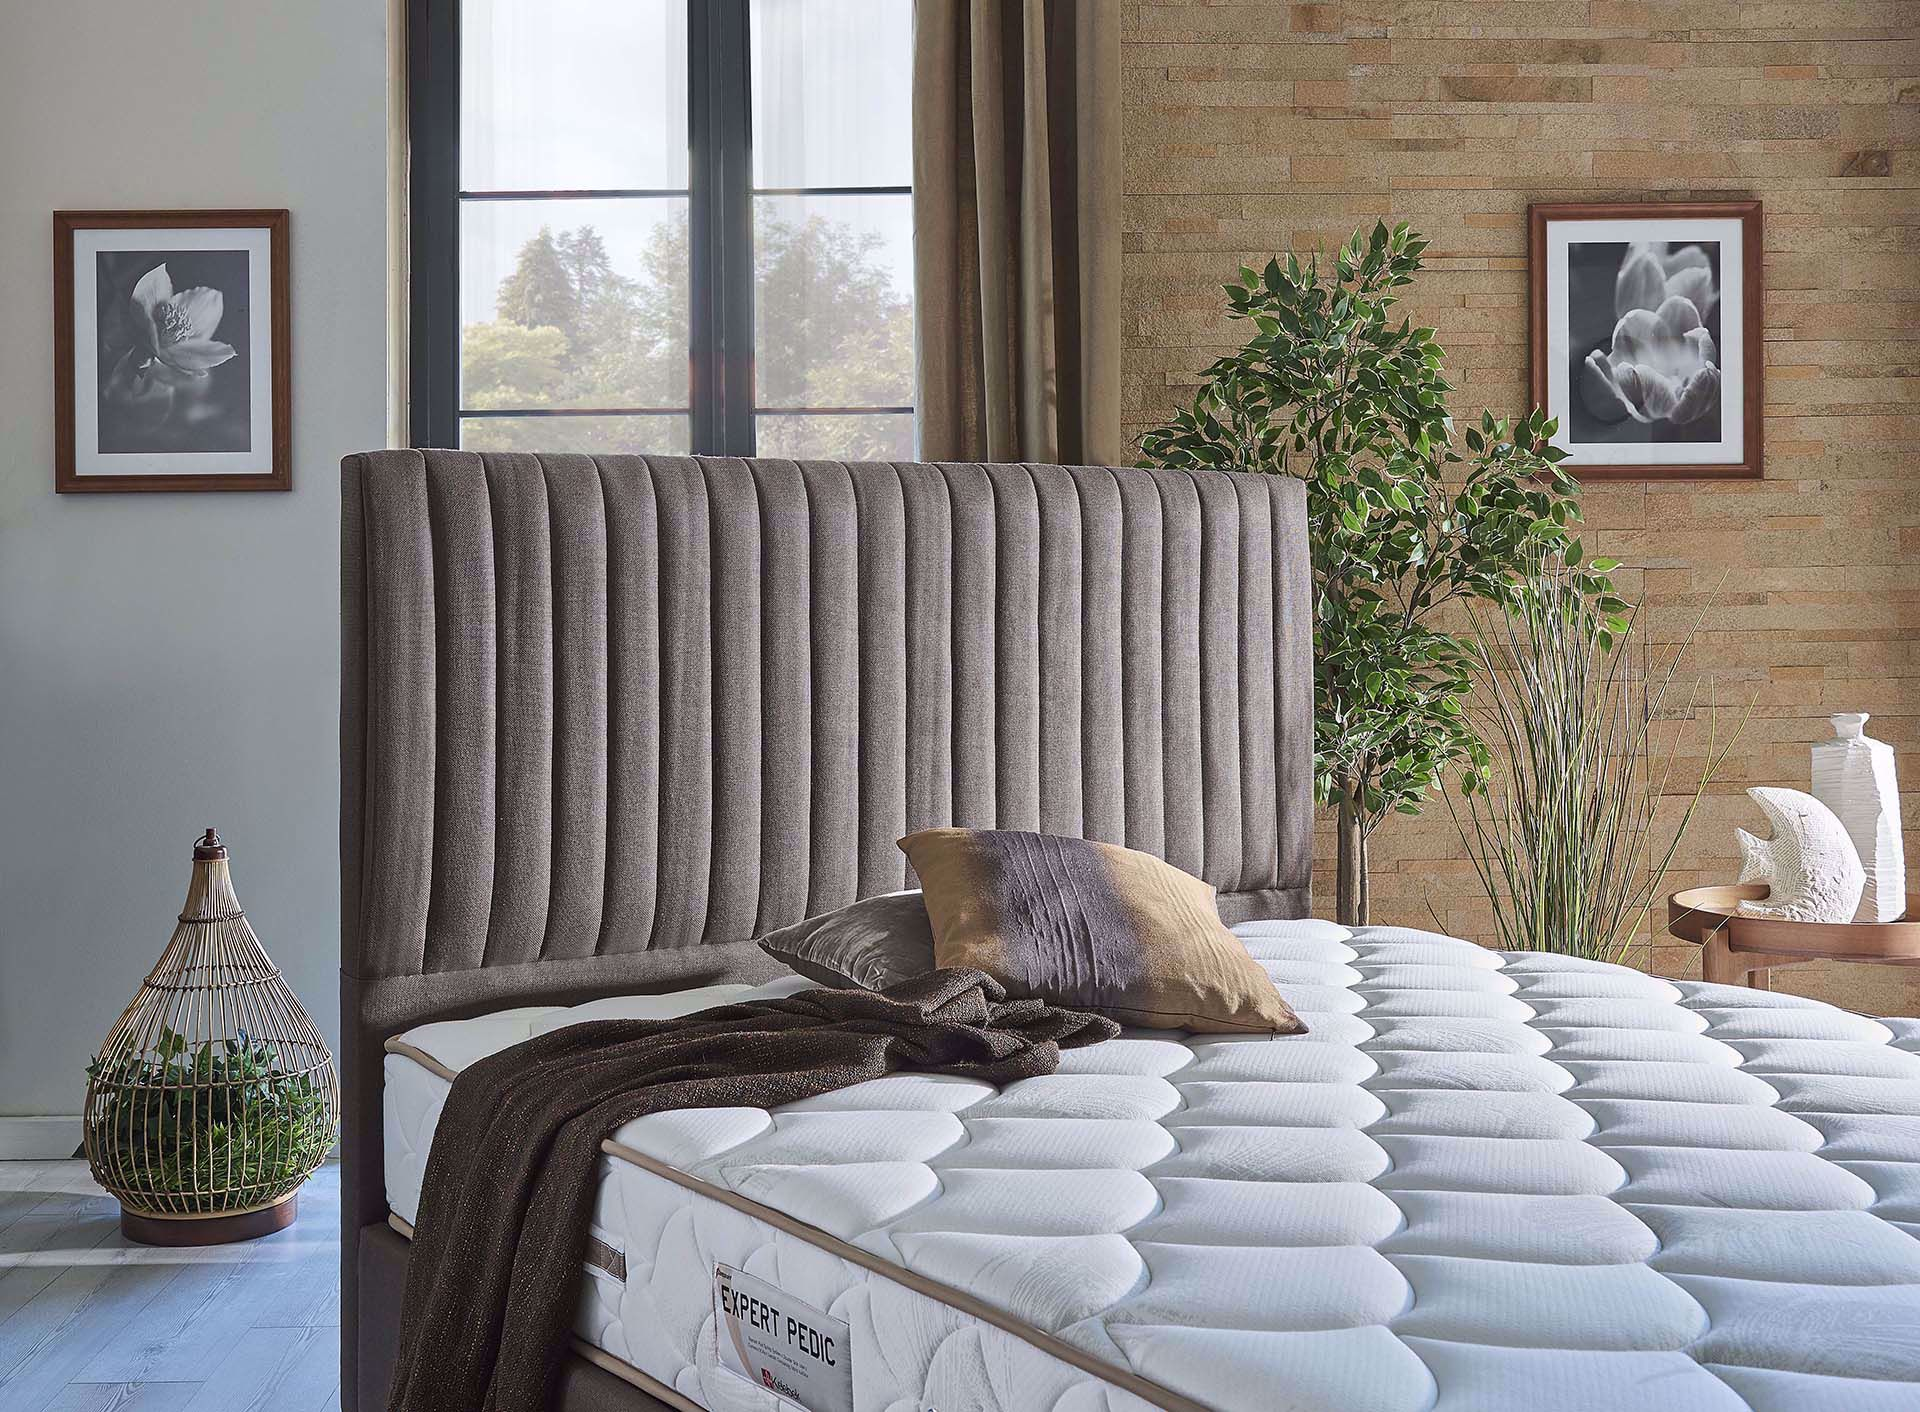 Dream Collection Expert Pedic Yatak 90*190 cm